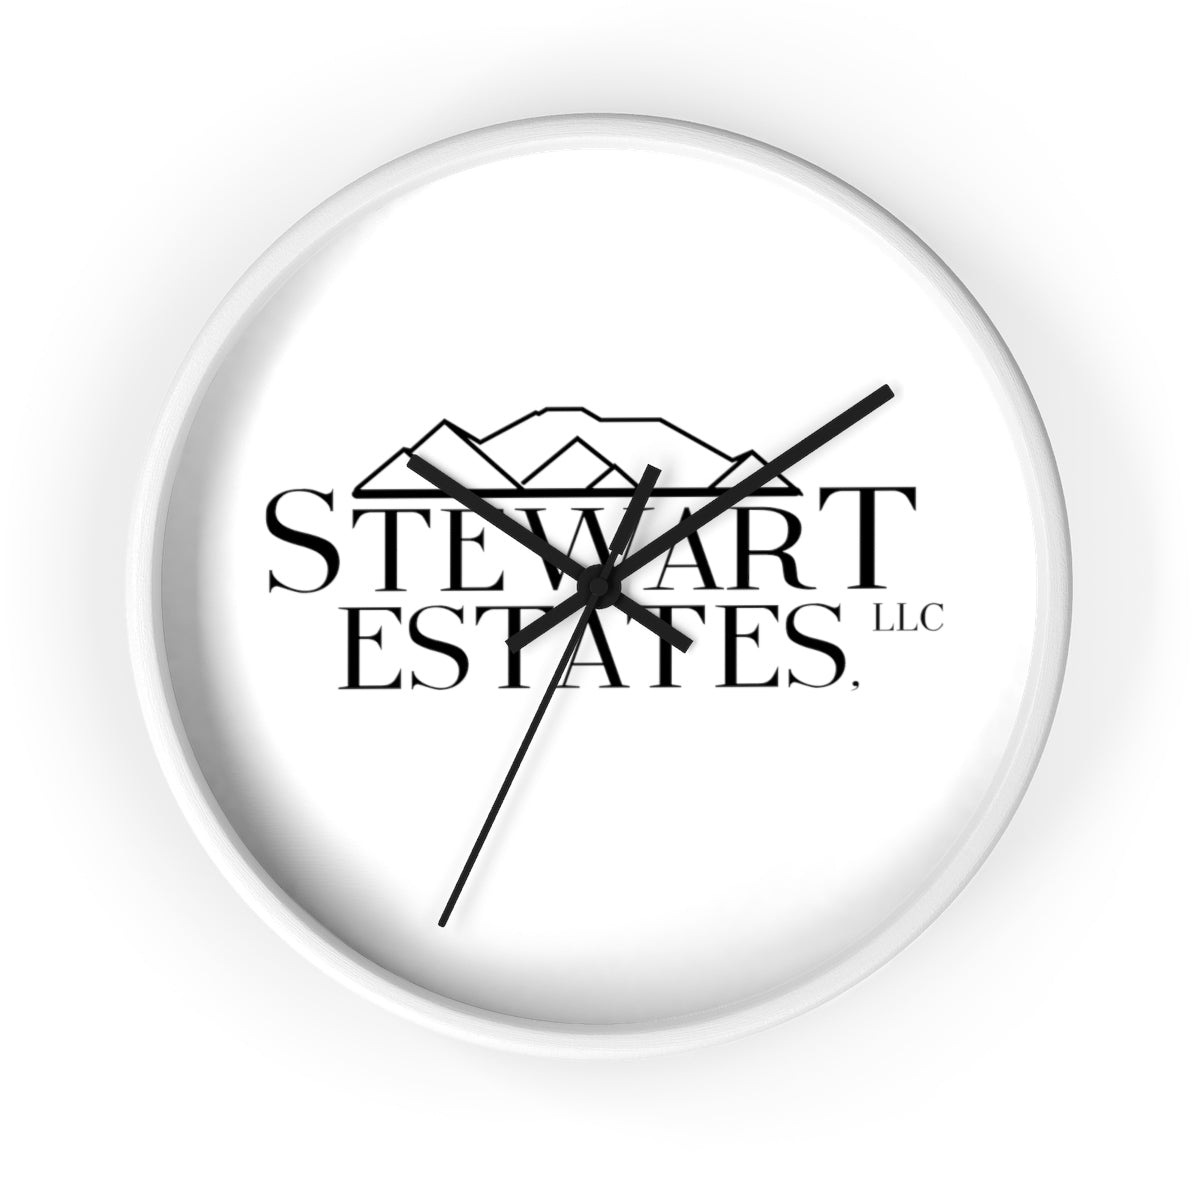 Stewart Estates LLC | Wall clock - LOL, I NEED That!